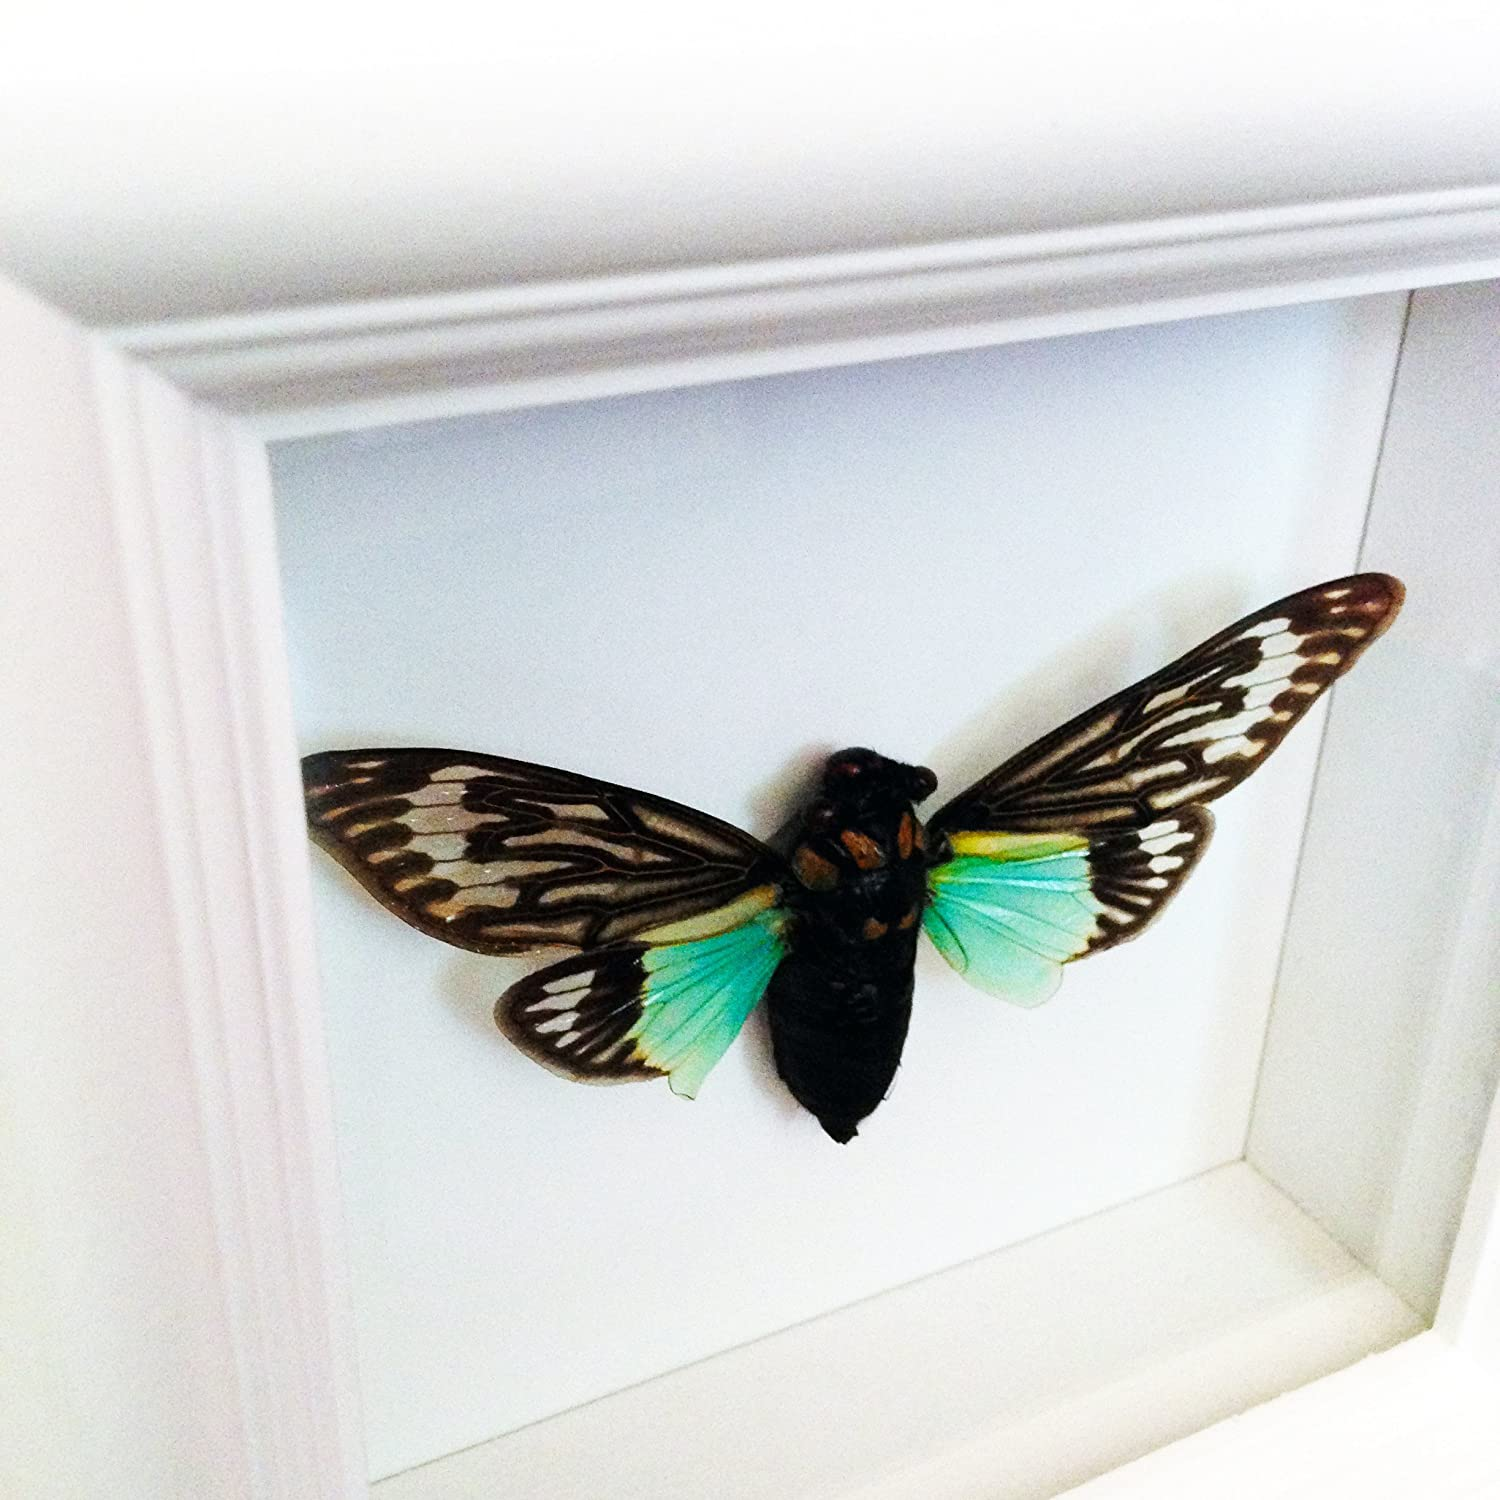 Real Cicada Insect Taxidermy Art- Butterflies, Butterfly Art, Insect Art, Entomology, Taxidermist, Interior Design, Bugs